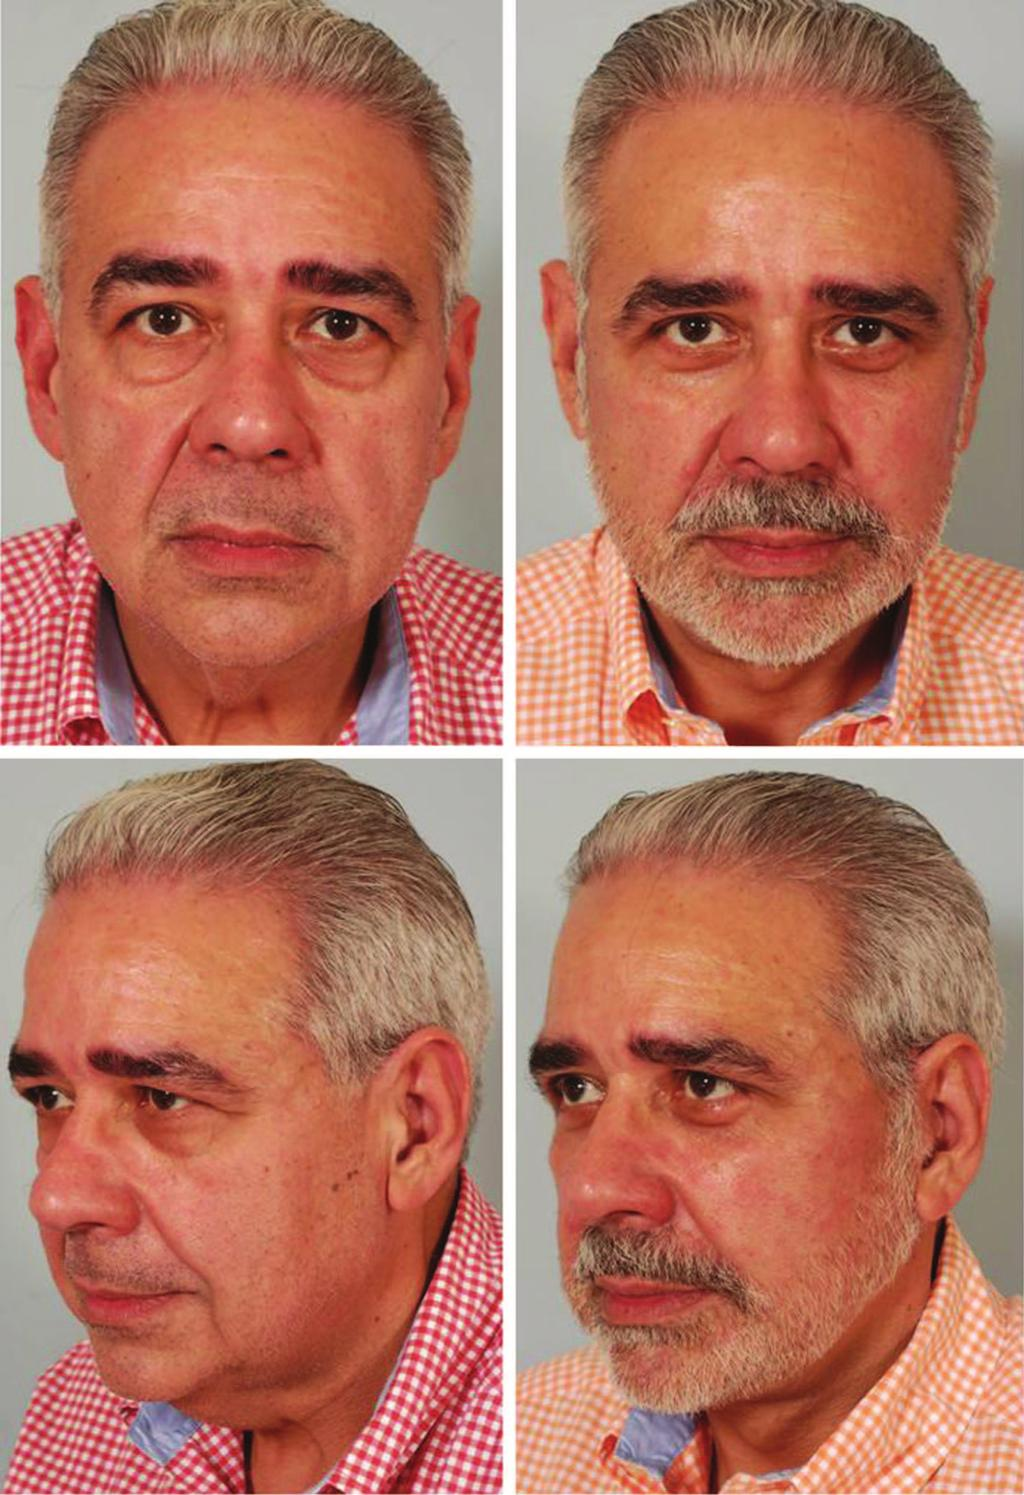 Volume 129, Number 5S Restoring Facial Shape in Face Lifting Fig. 3. (Left) Preoperative appearance of a 59-year-old man after a 90-pound weight loss from a gastric bypass procedure.